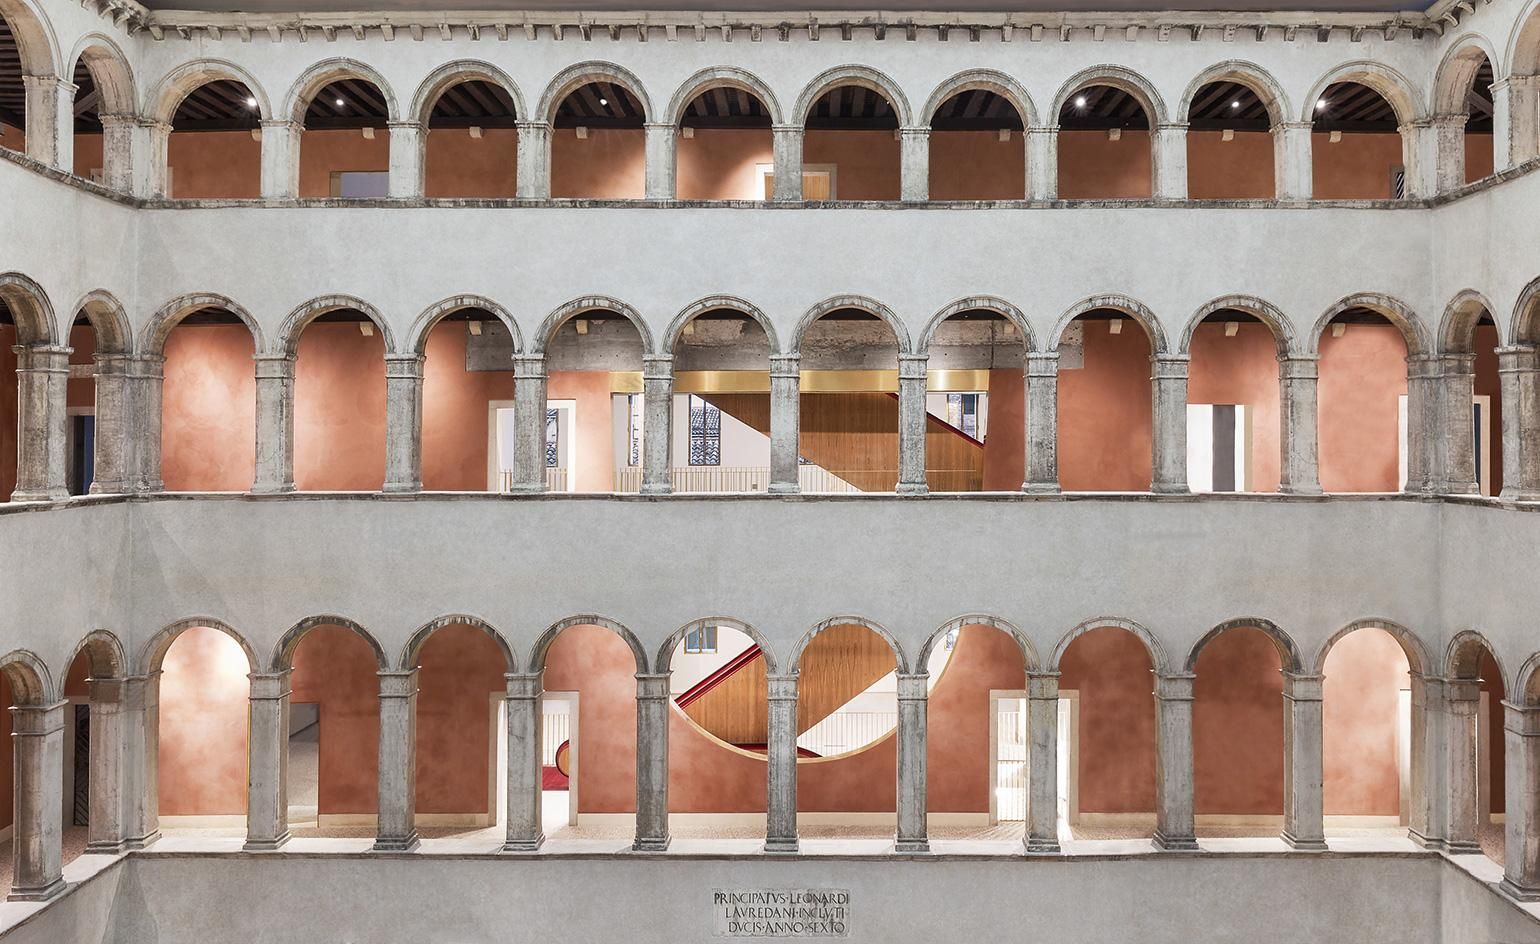 Fondaco Dei Tedeschi In Venice Opens After Oma Redesign